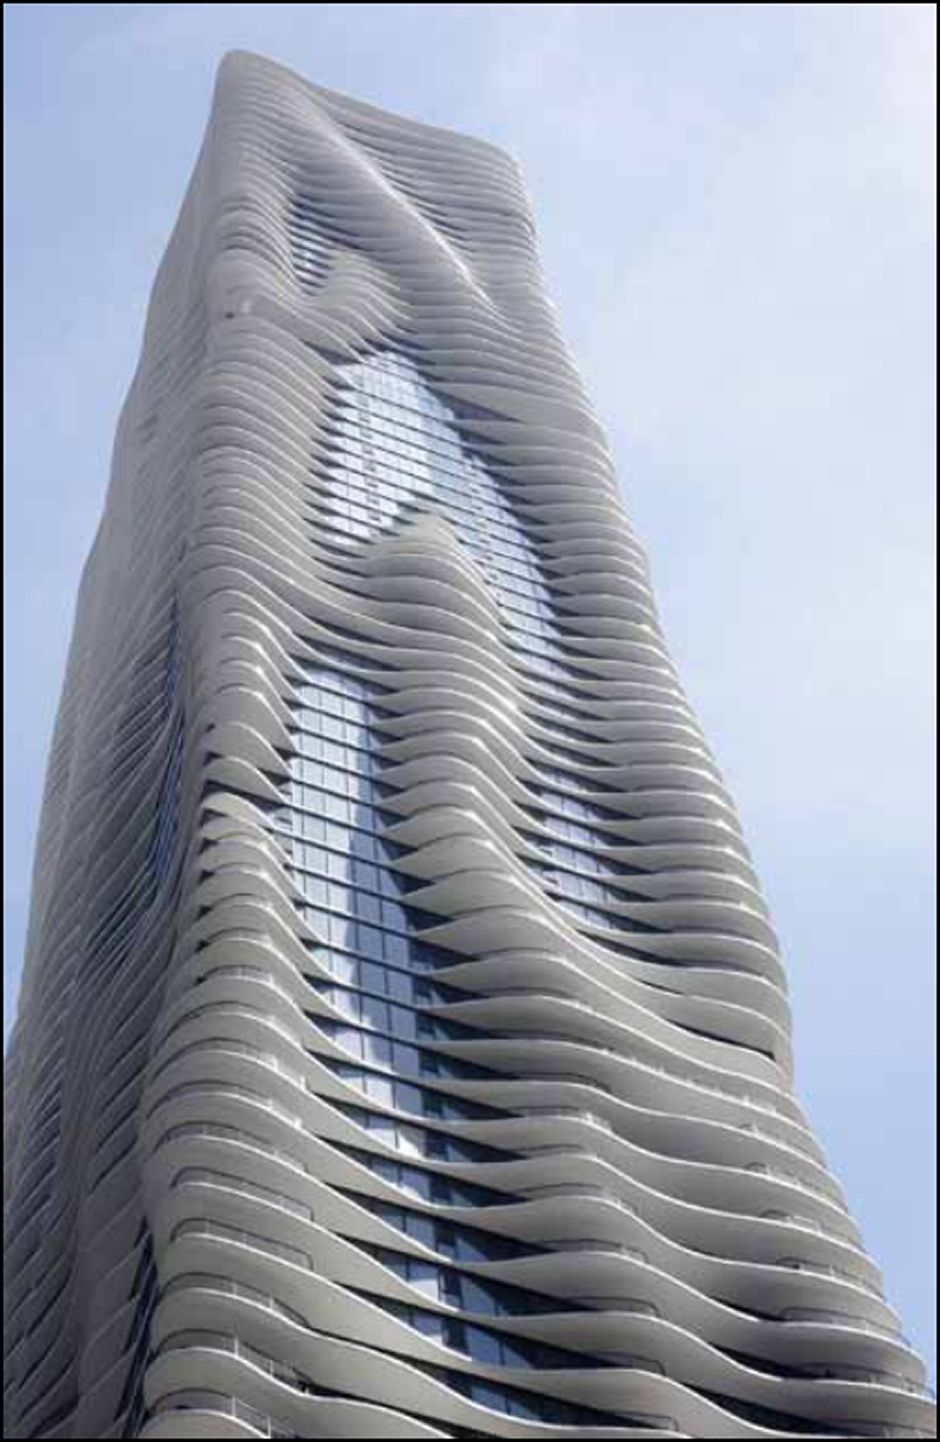 Bird-friendly: The Studio Gang's Aqua Tower in Chicago was ...